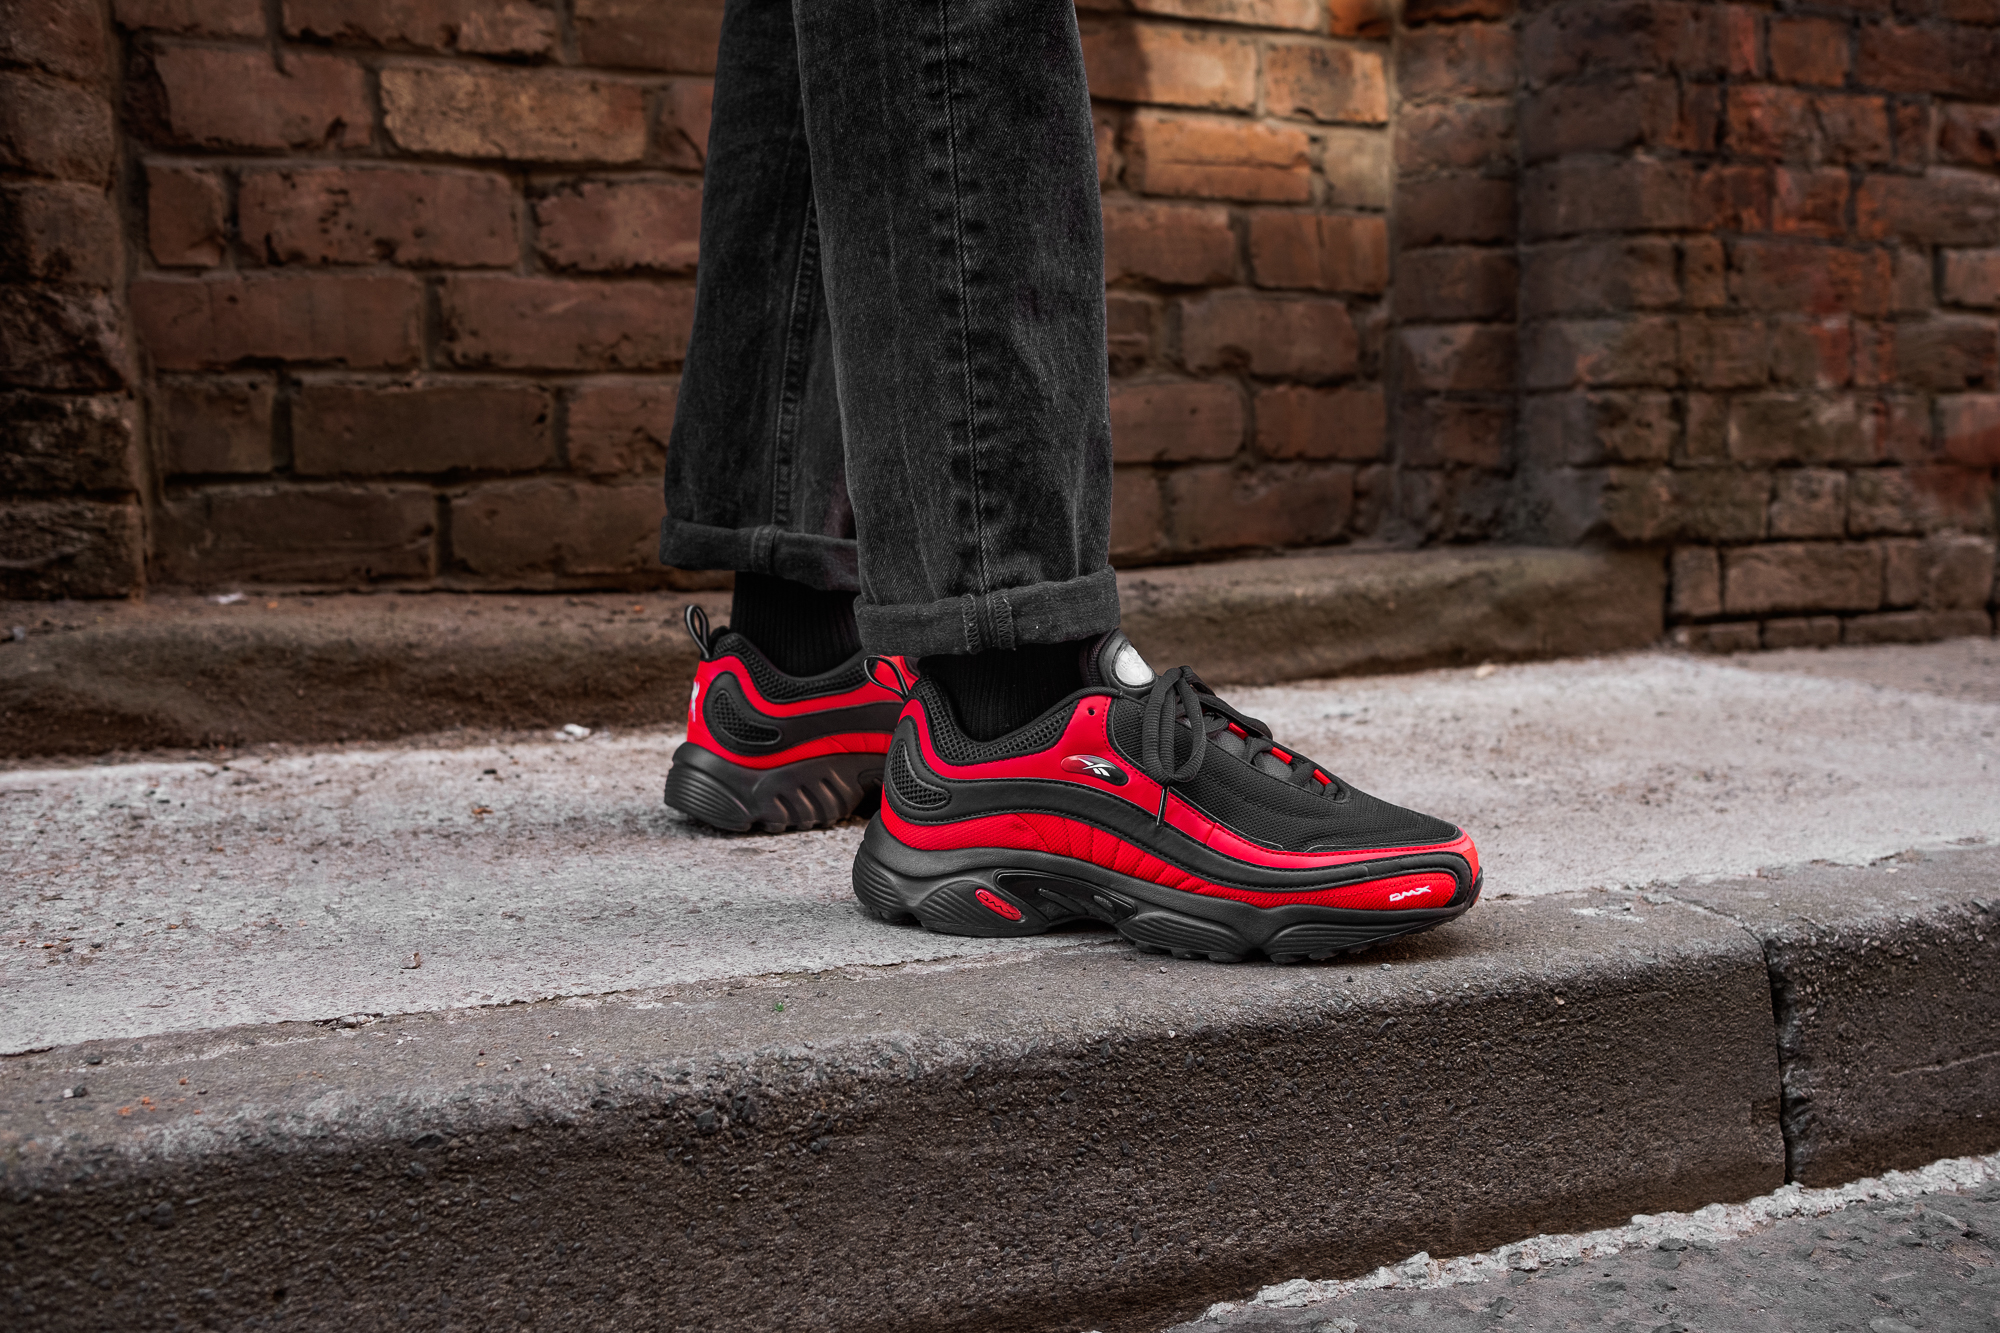 1cbd3923025a2f Reebok Daytona DMX size  Exclusive Red And Black - size  Blog